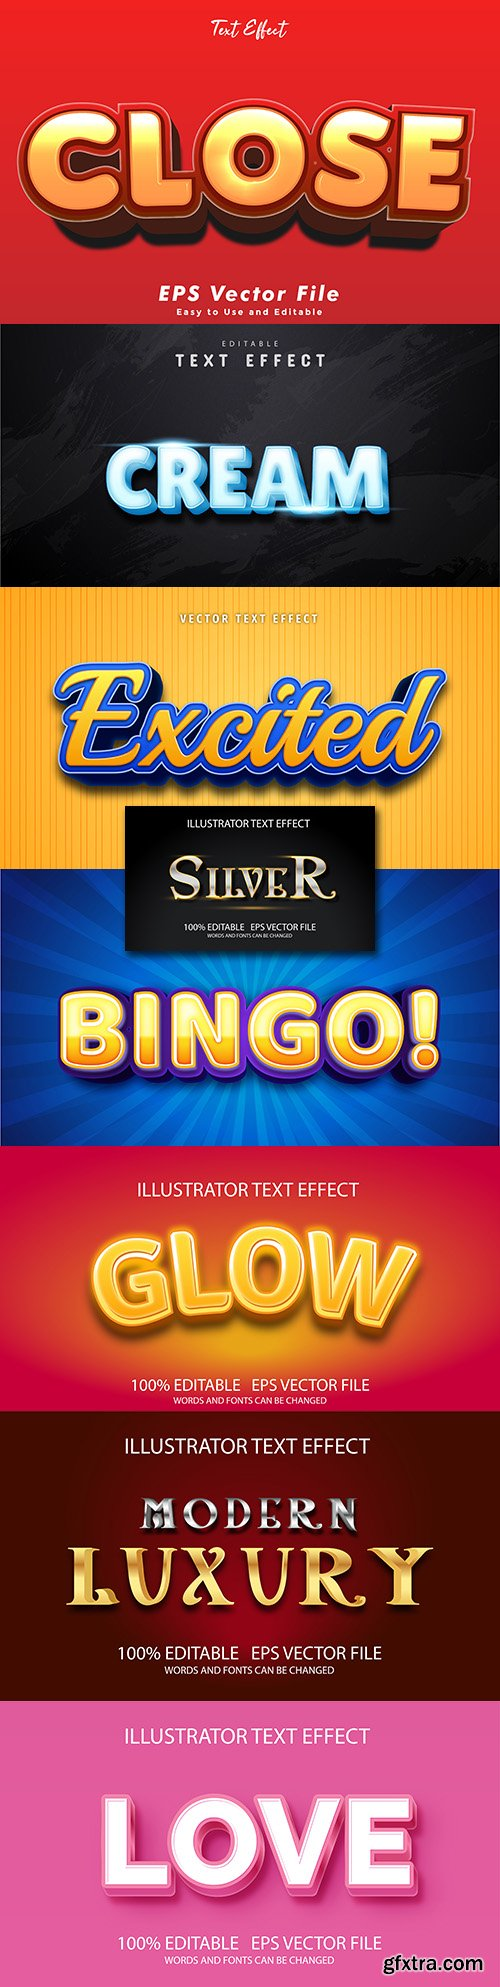 Editable font and 3d effect text design collection illustration 4